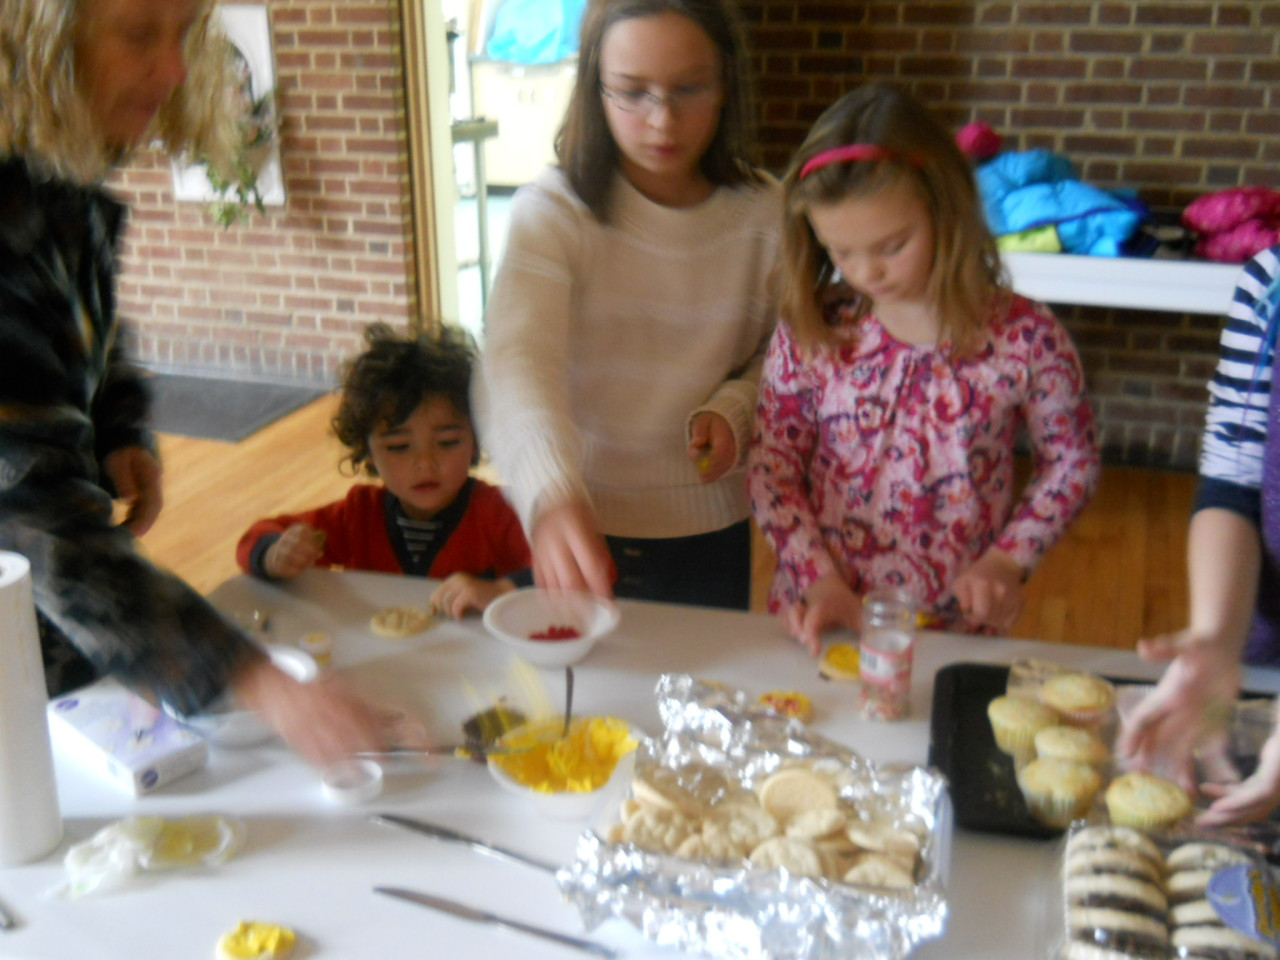 Decorating cookies for the Albany Damien Center with the children from St. John's Lutheran Church